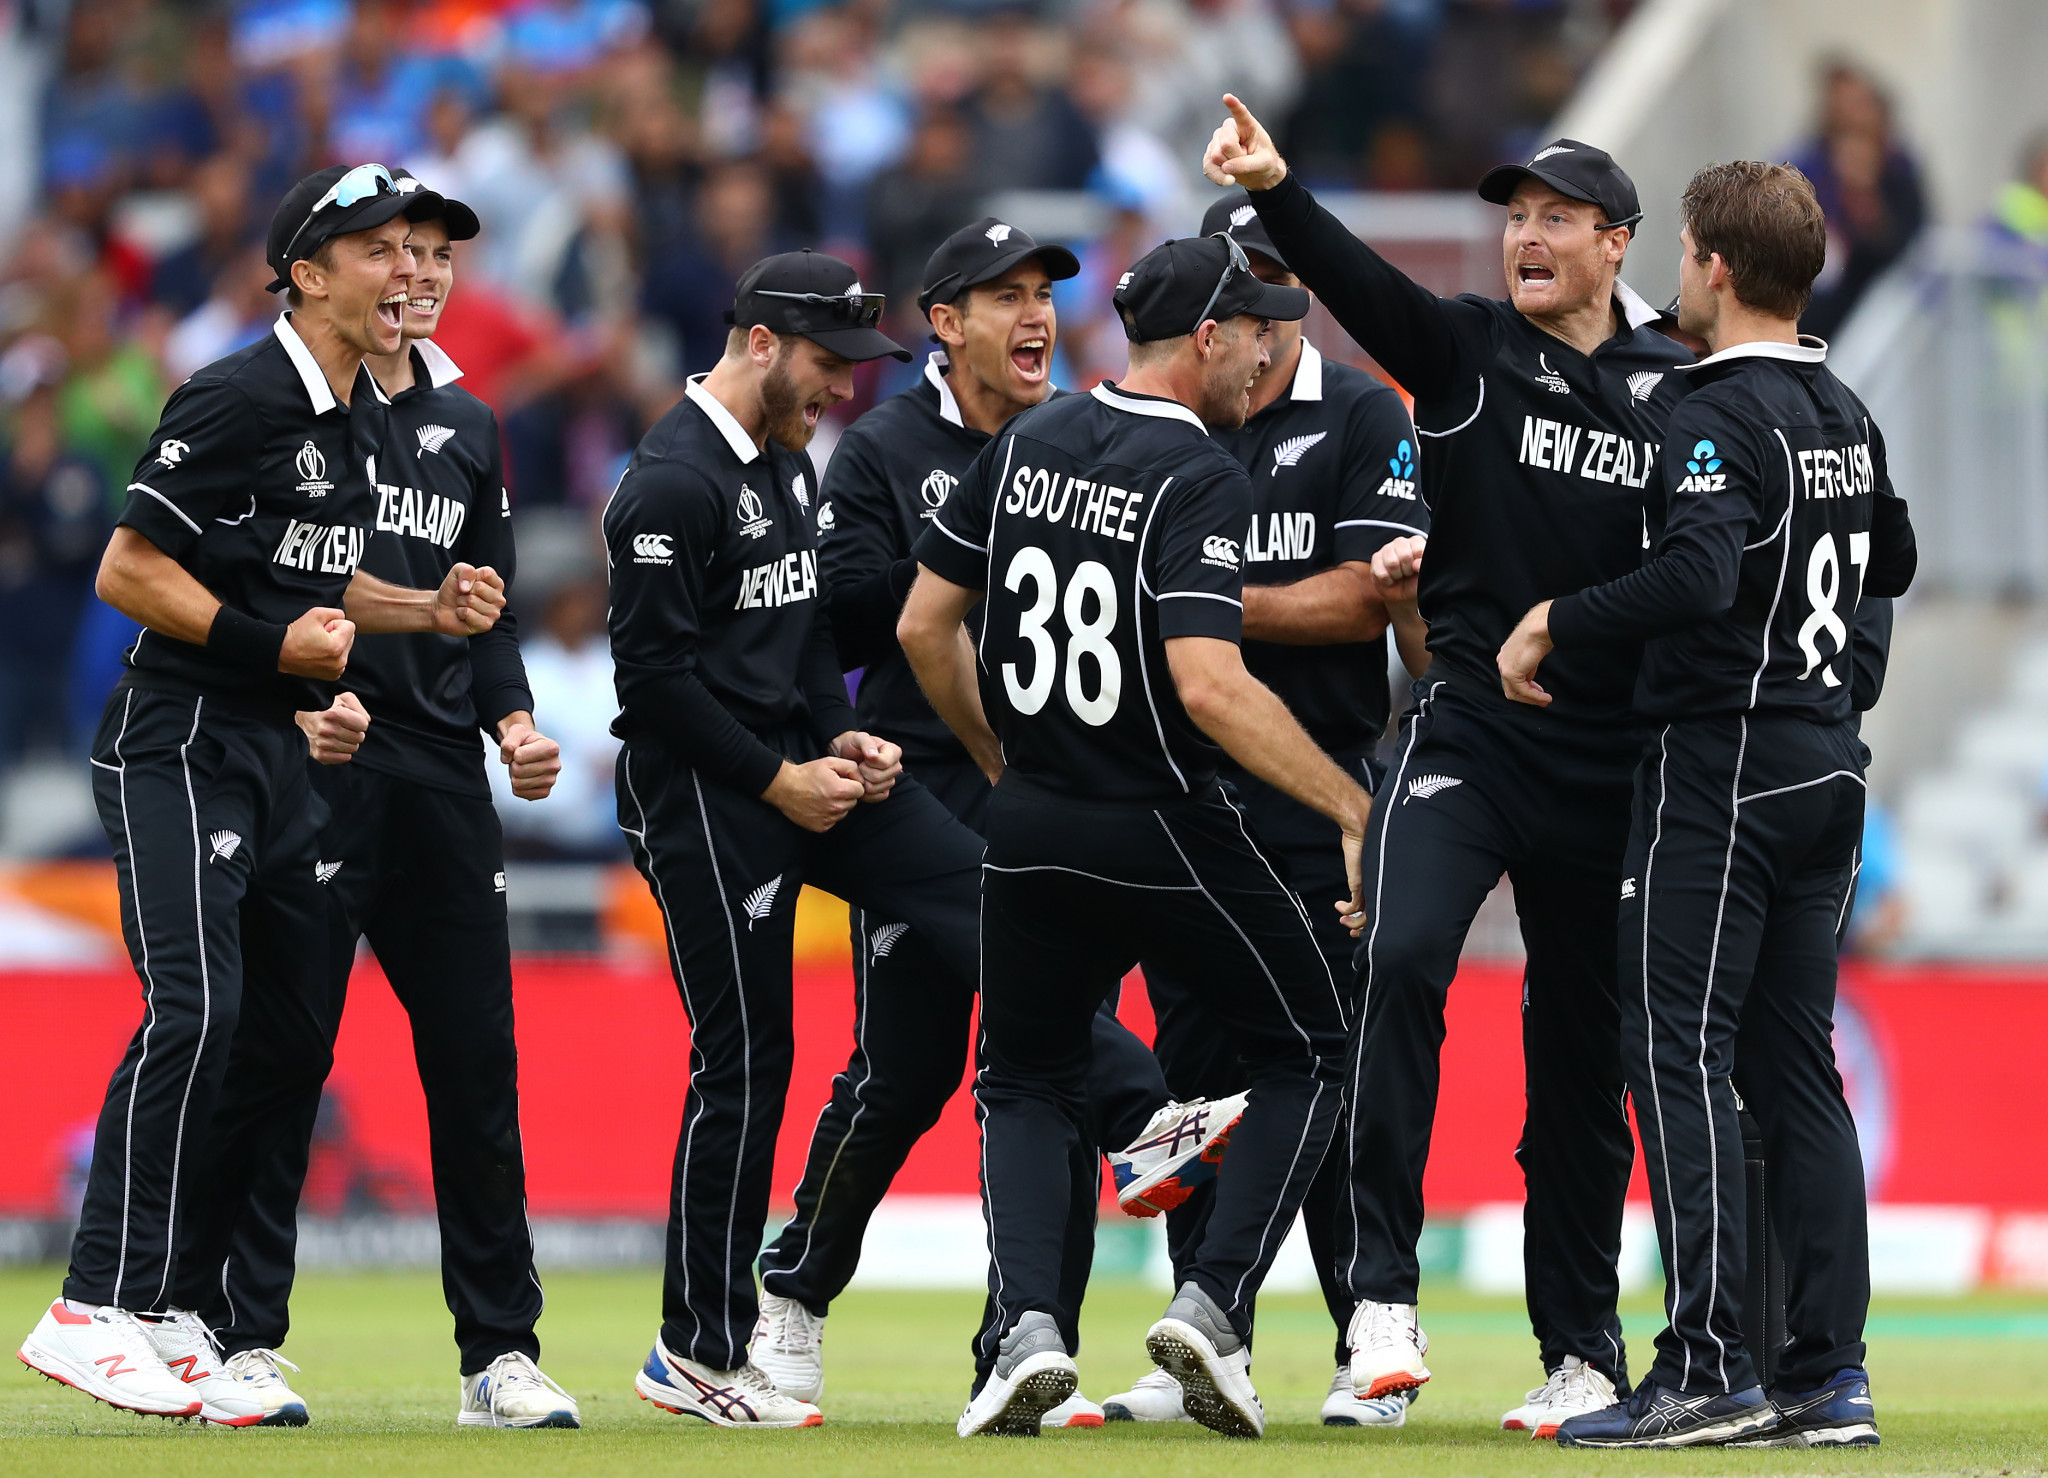 New Zealand upset India with thrilling victory to reach ICC Cricket World Cup final